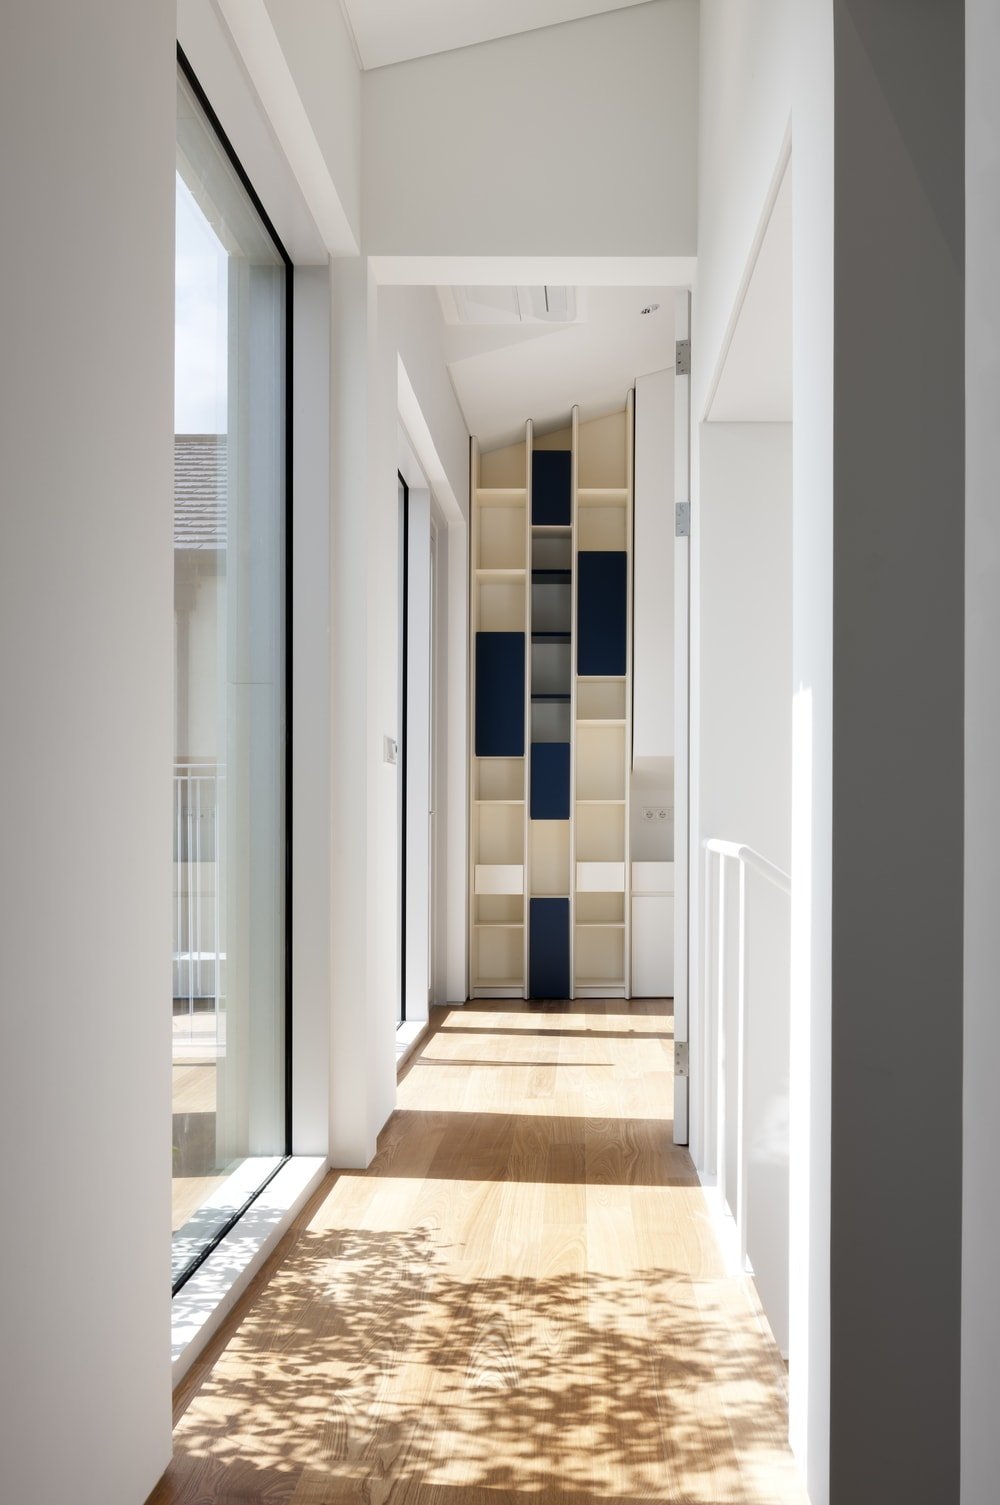 This is a hallway on the upper level of the house that has glass walls and built-in shelf system on the far end.